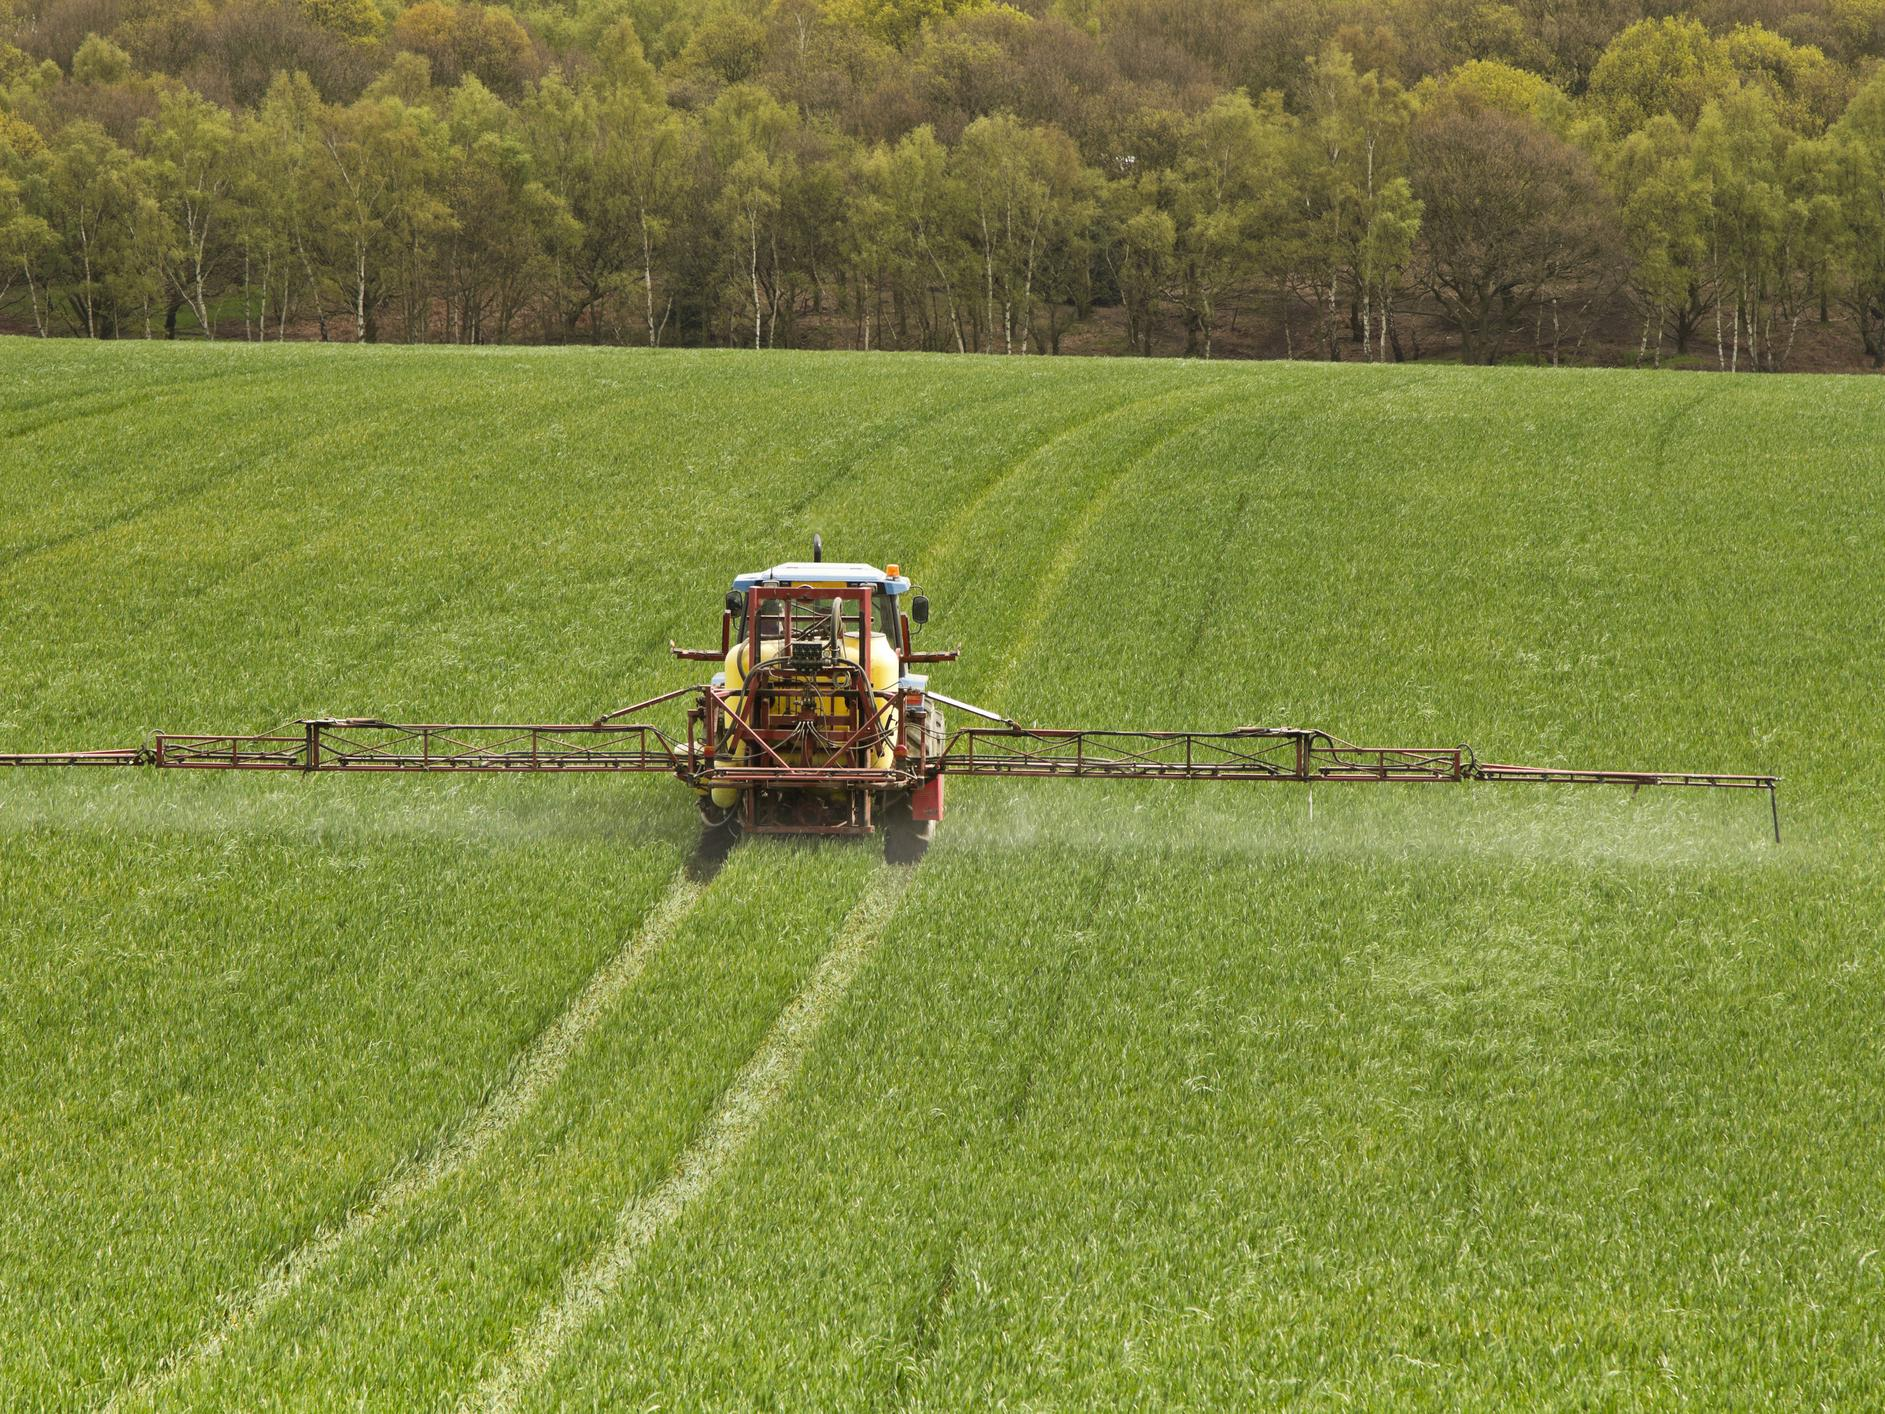 Brexit: UK could lower pesticide standards to US levels in exchange for trade deal, campaigners warn